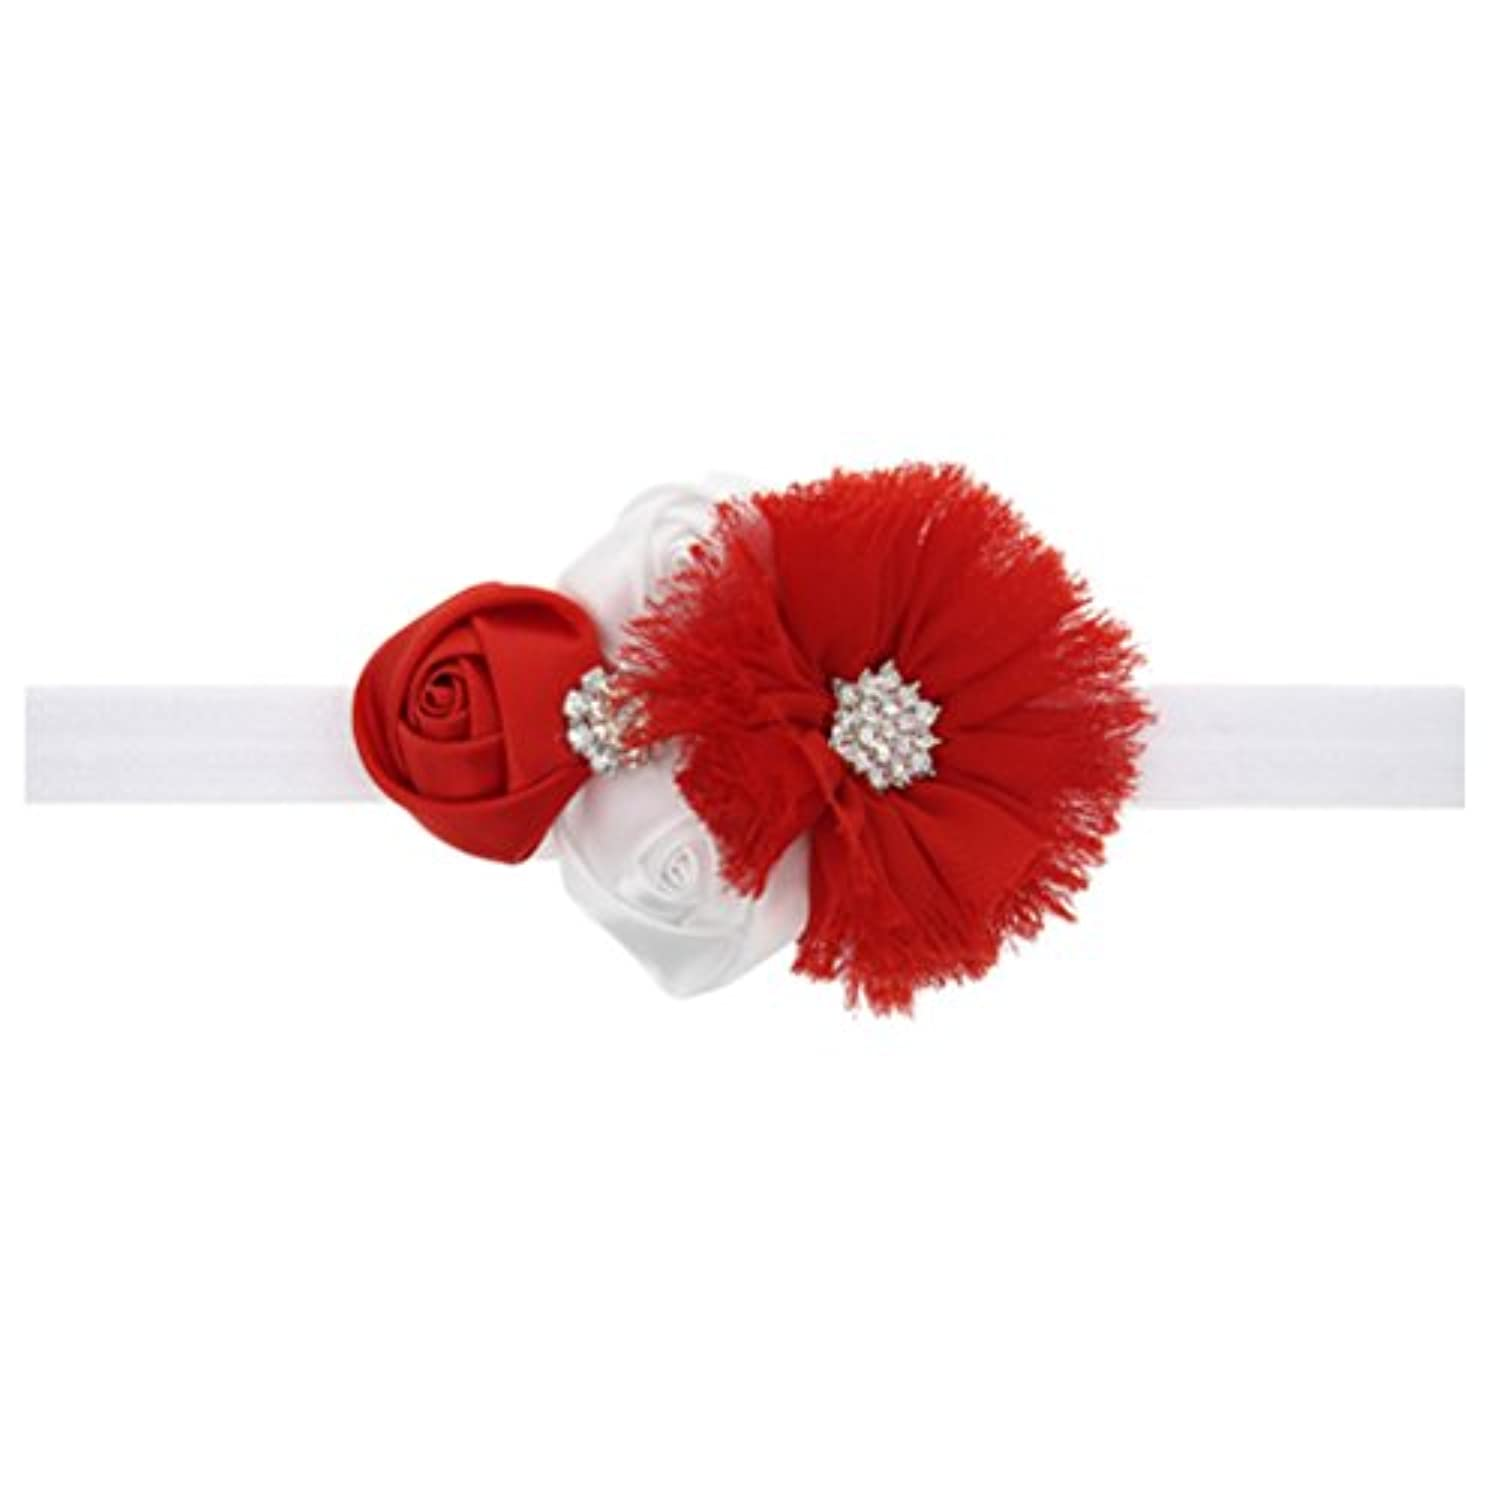 Zhhlaixing ベビー小物 Baby Girls Toddler Kids Elastic Red Bouquet Headband Hairband Hair Accessories for Christmas